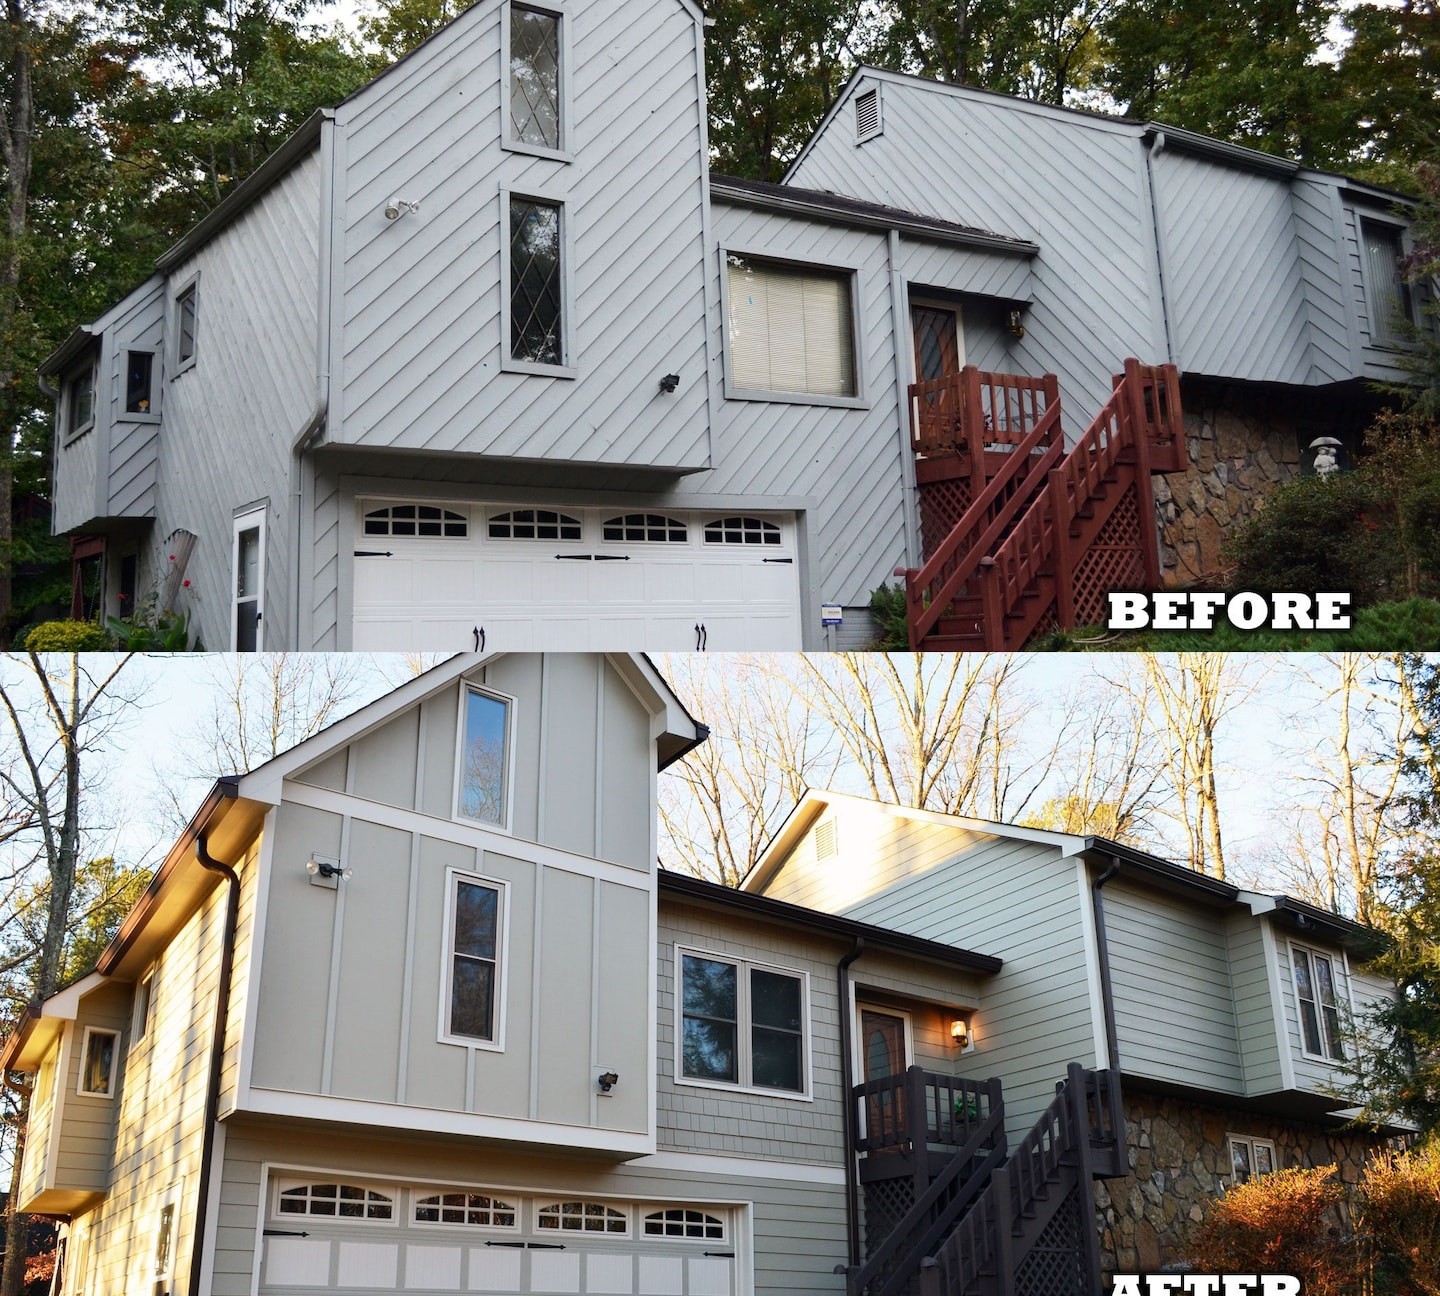 Before And After Siding, Windows, and Doors